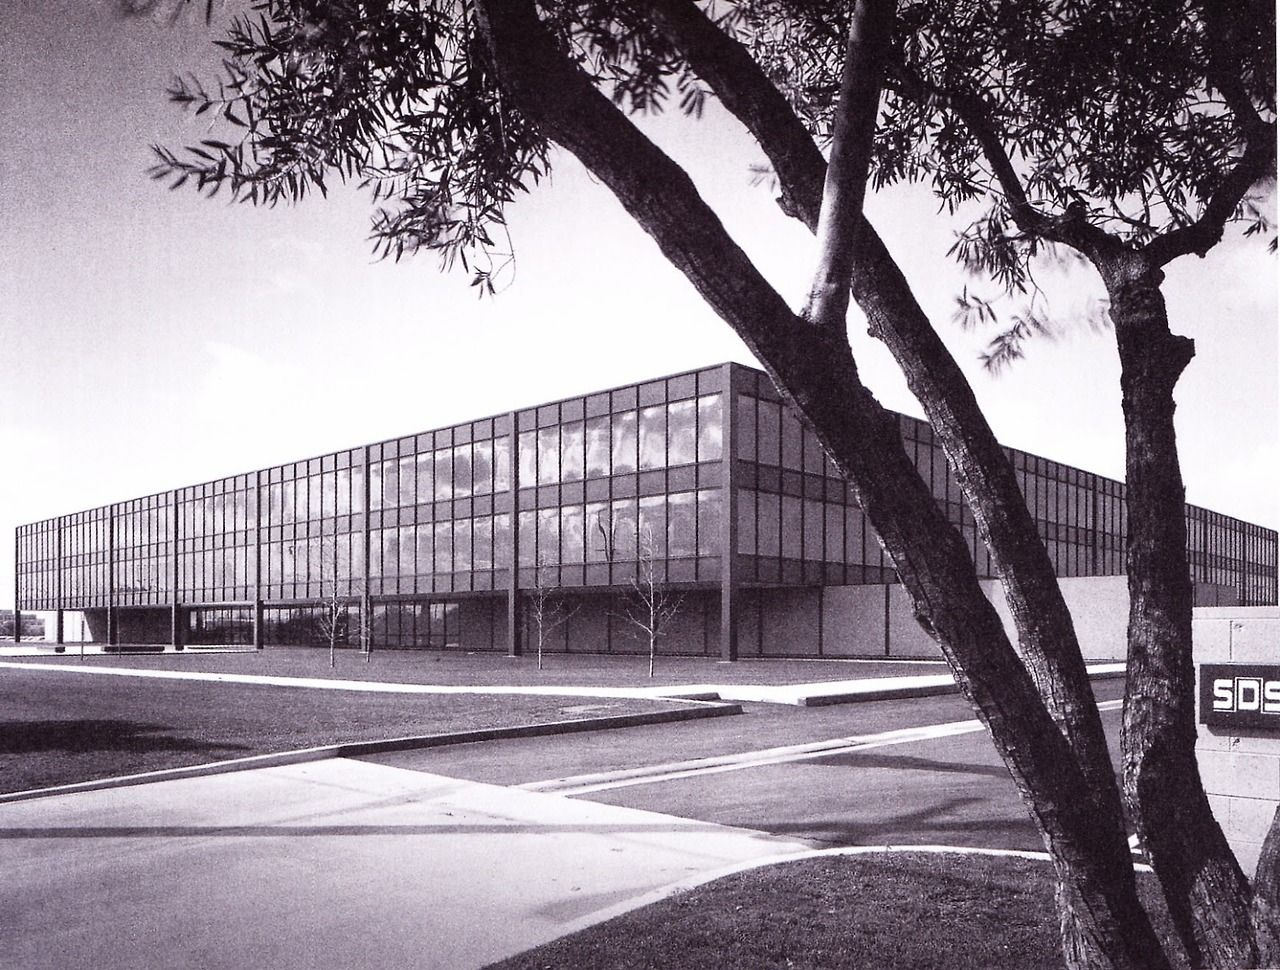 """Administration and Engineering Building (1966-68) of the Company""""SDS"""" in El Segundo, USA, by C... - #1960s #administration #architecture #architektur #craig #ellwood #glass #Steel #usa"""